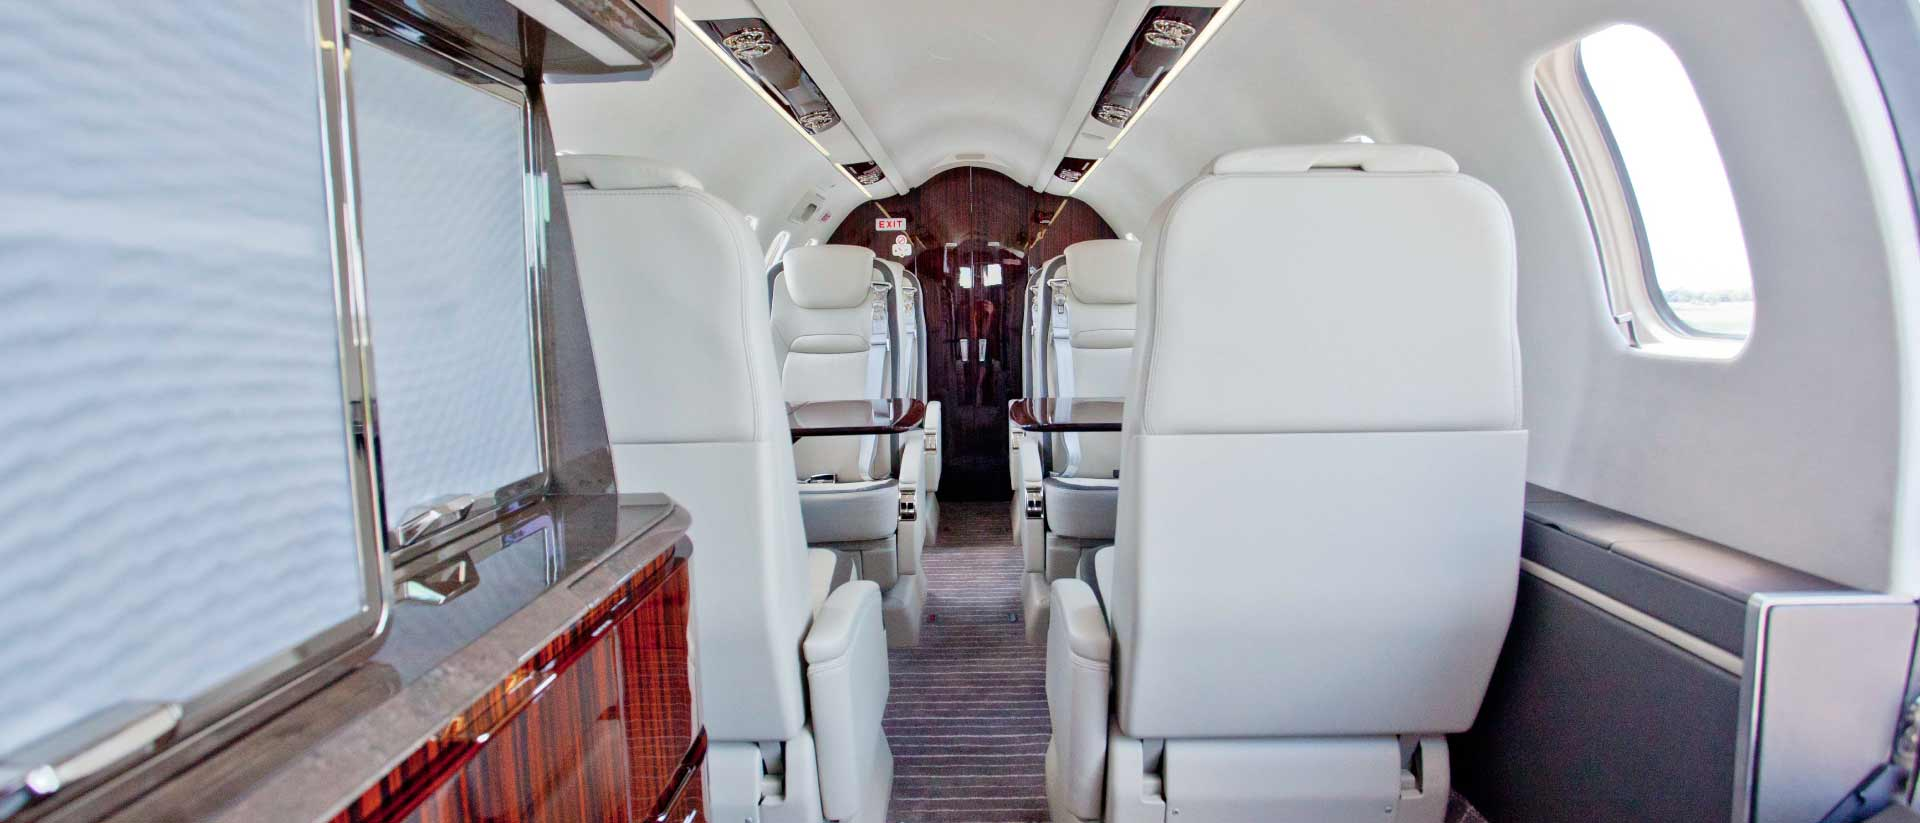 Bombardier Learjet 70 Galley